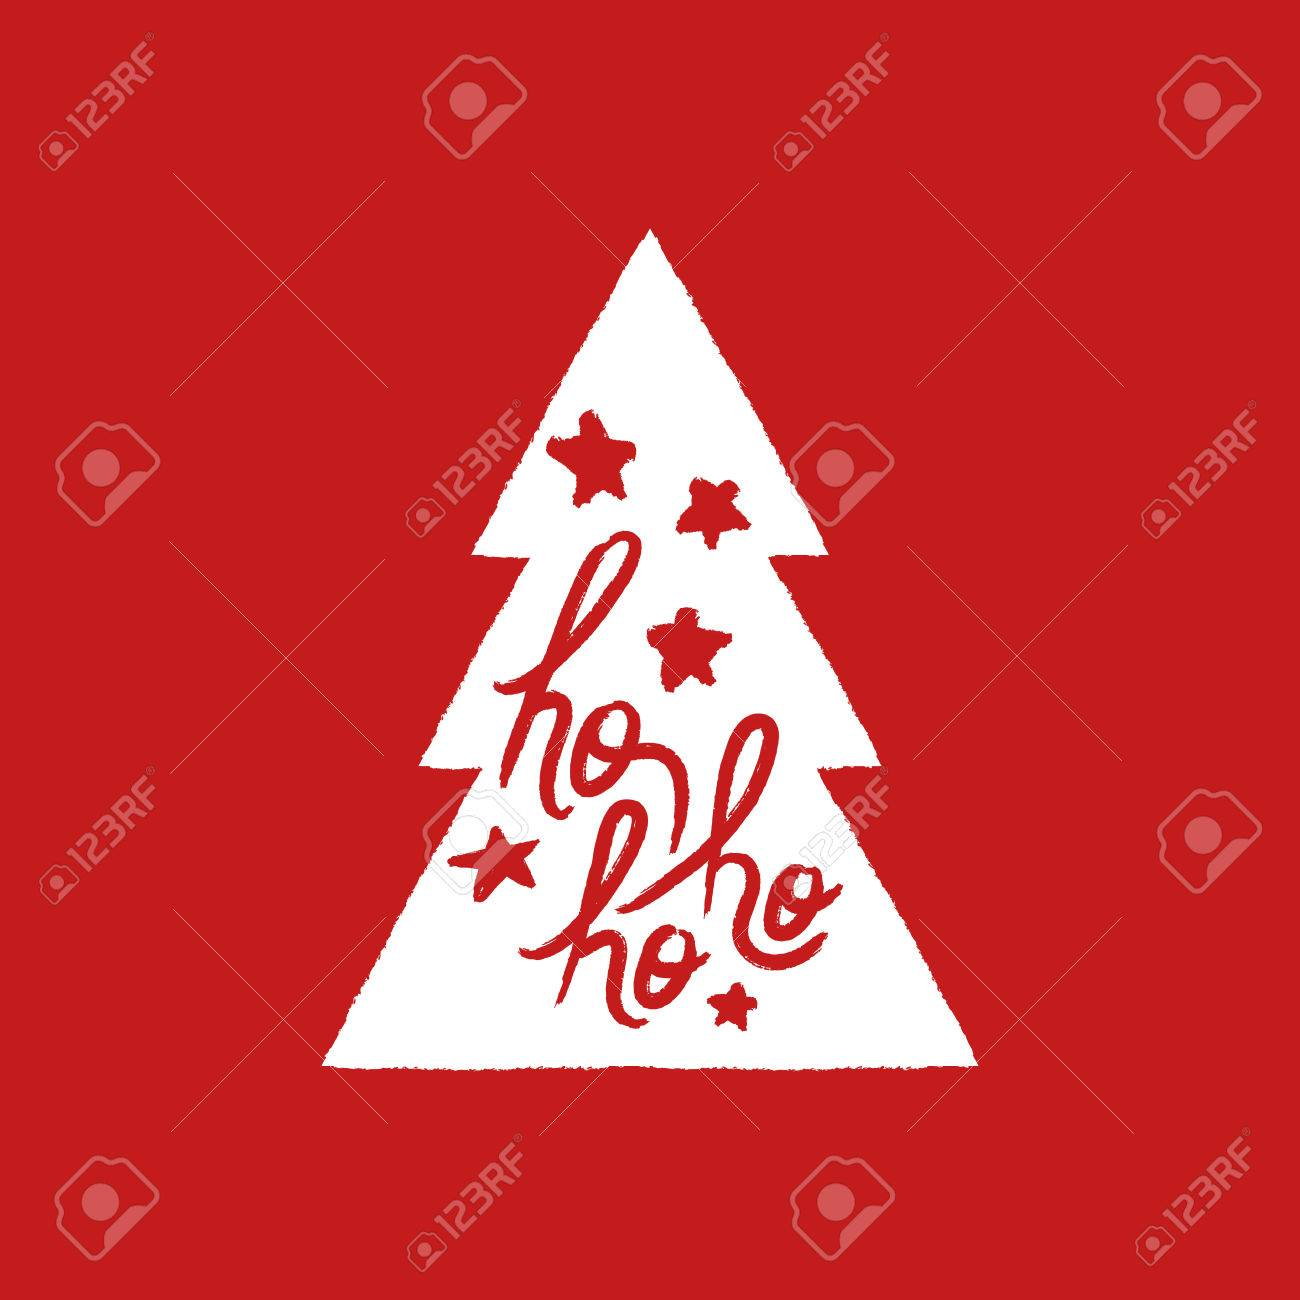 Merry Christmas Pine Tree Text Quote, Calligraphy Lettering Design For  Holiday Season. Creative Red